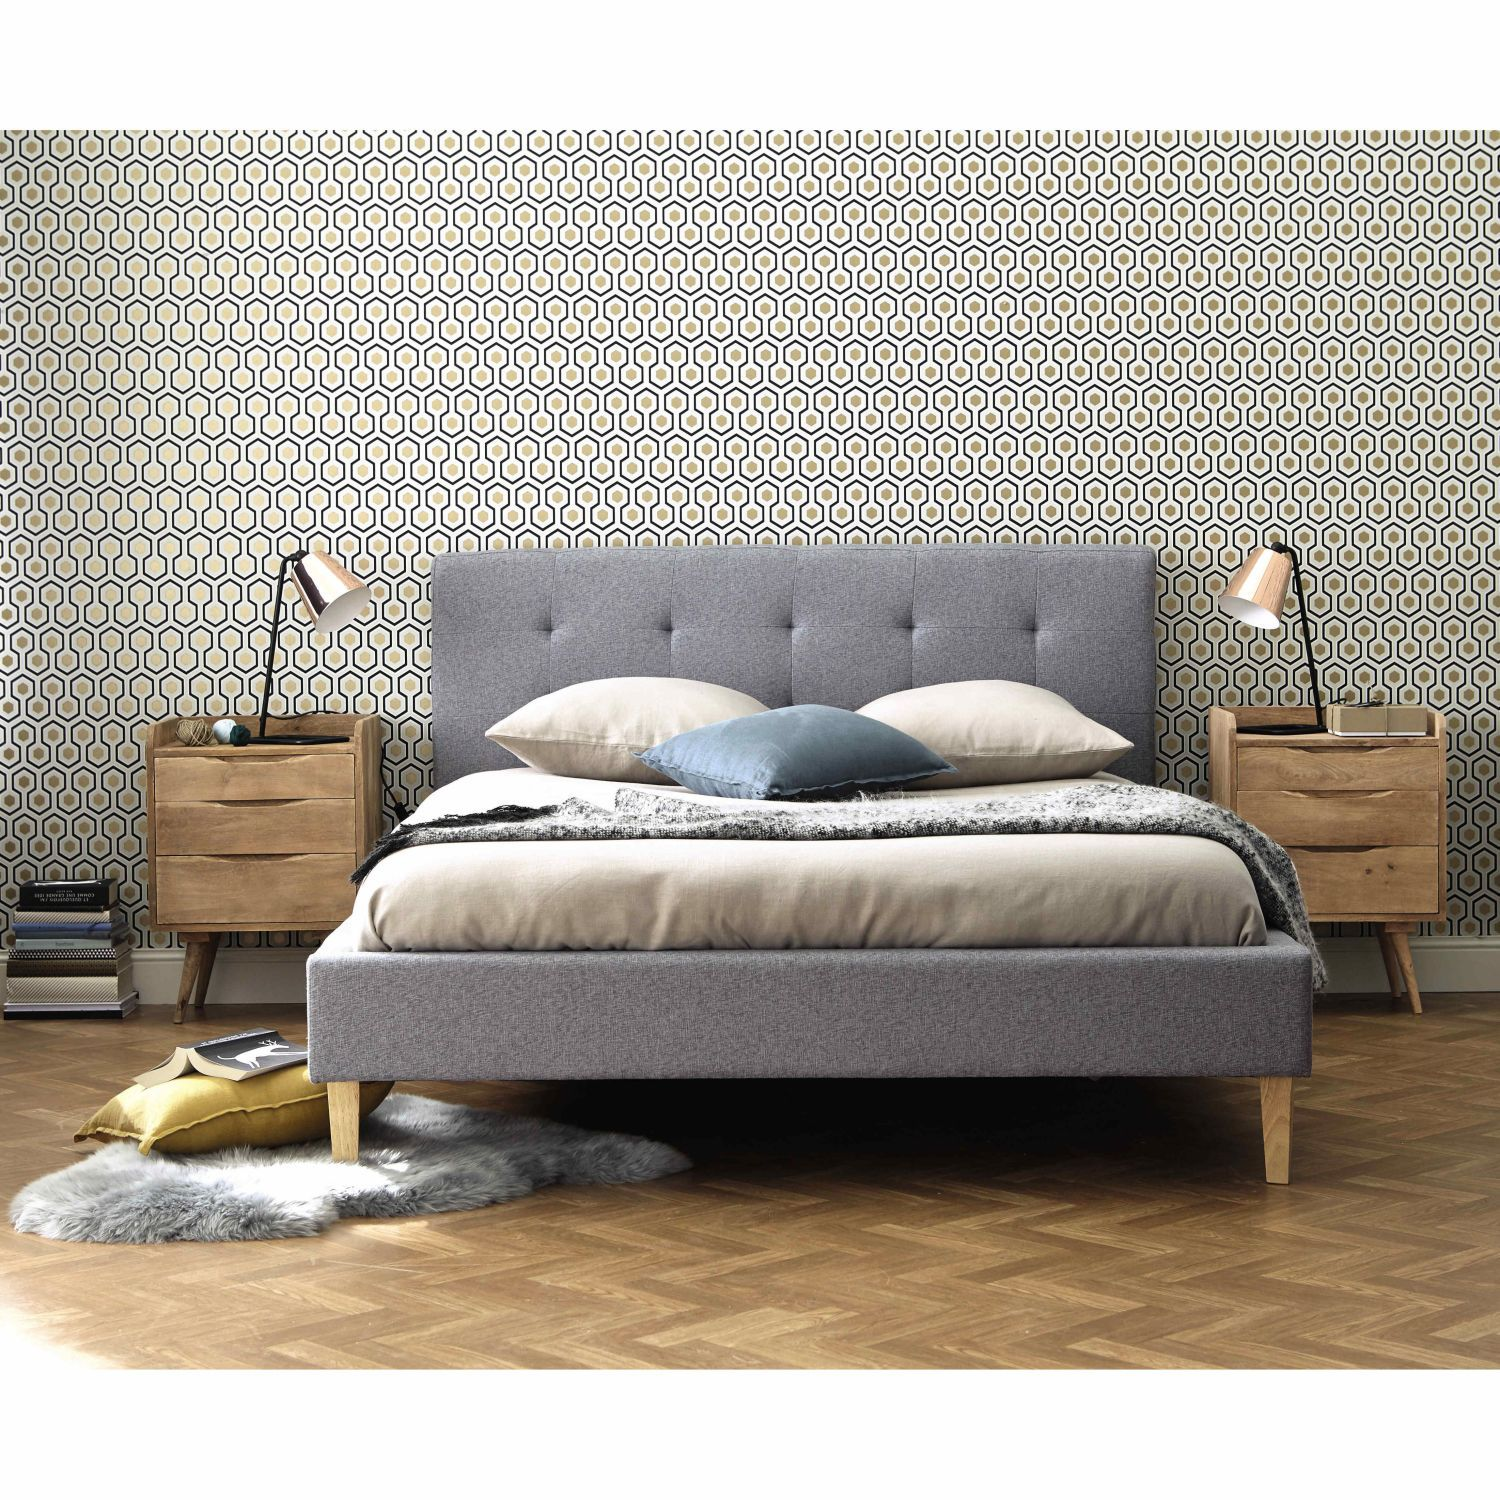 Bett Aus Holz Und Stoffgrau 160x200 Affordable Furniture